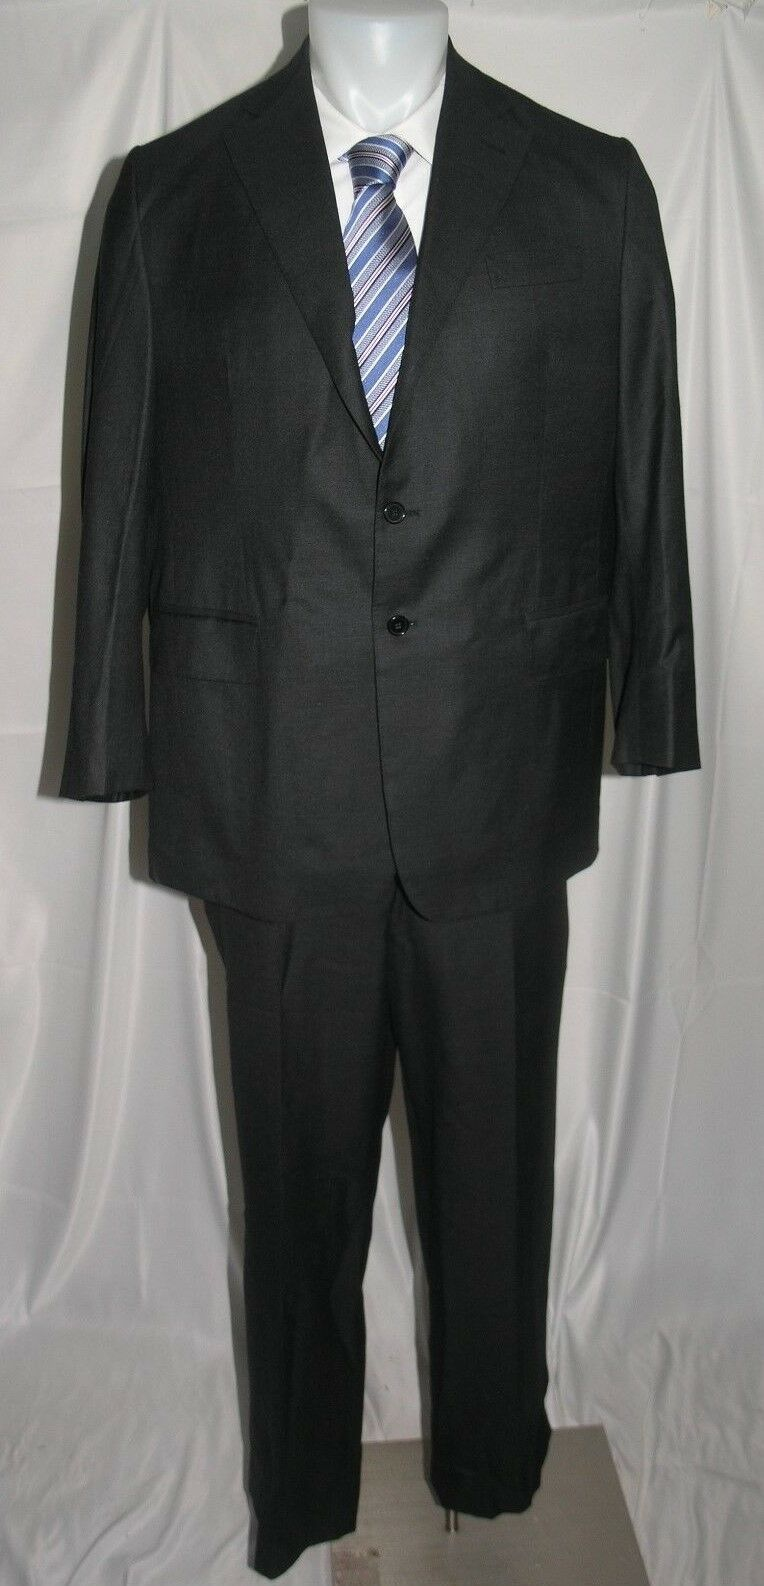 Uma Reddy 11 oz Wool Two Button Flat Front Bespoke Suit 44 R 36 x 28